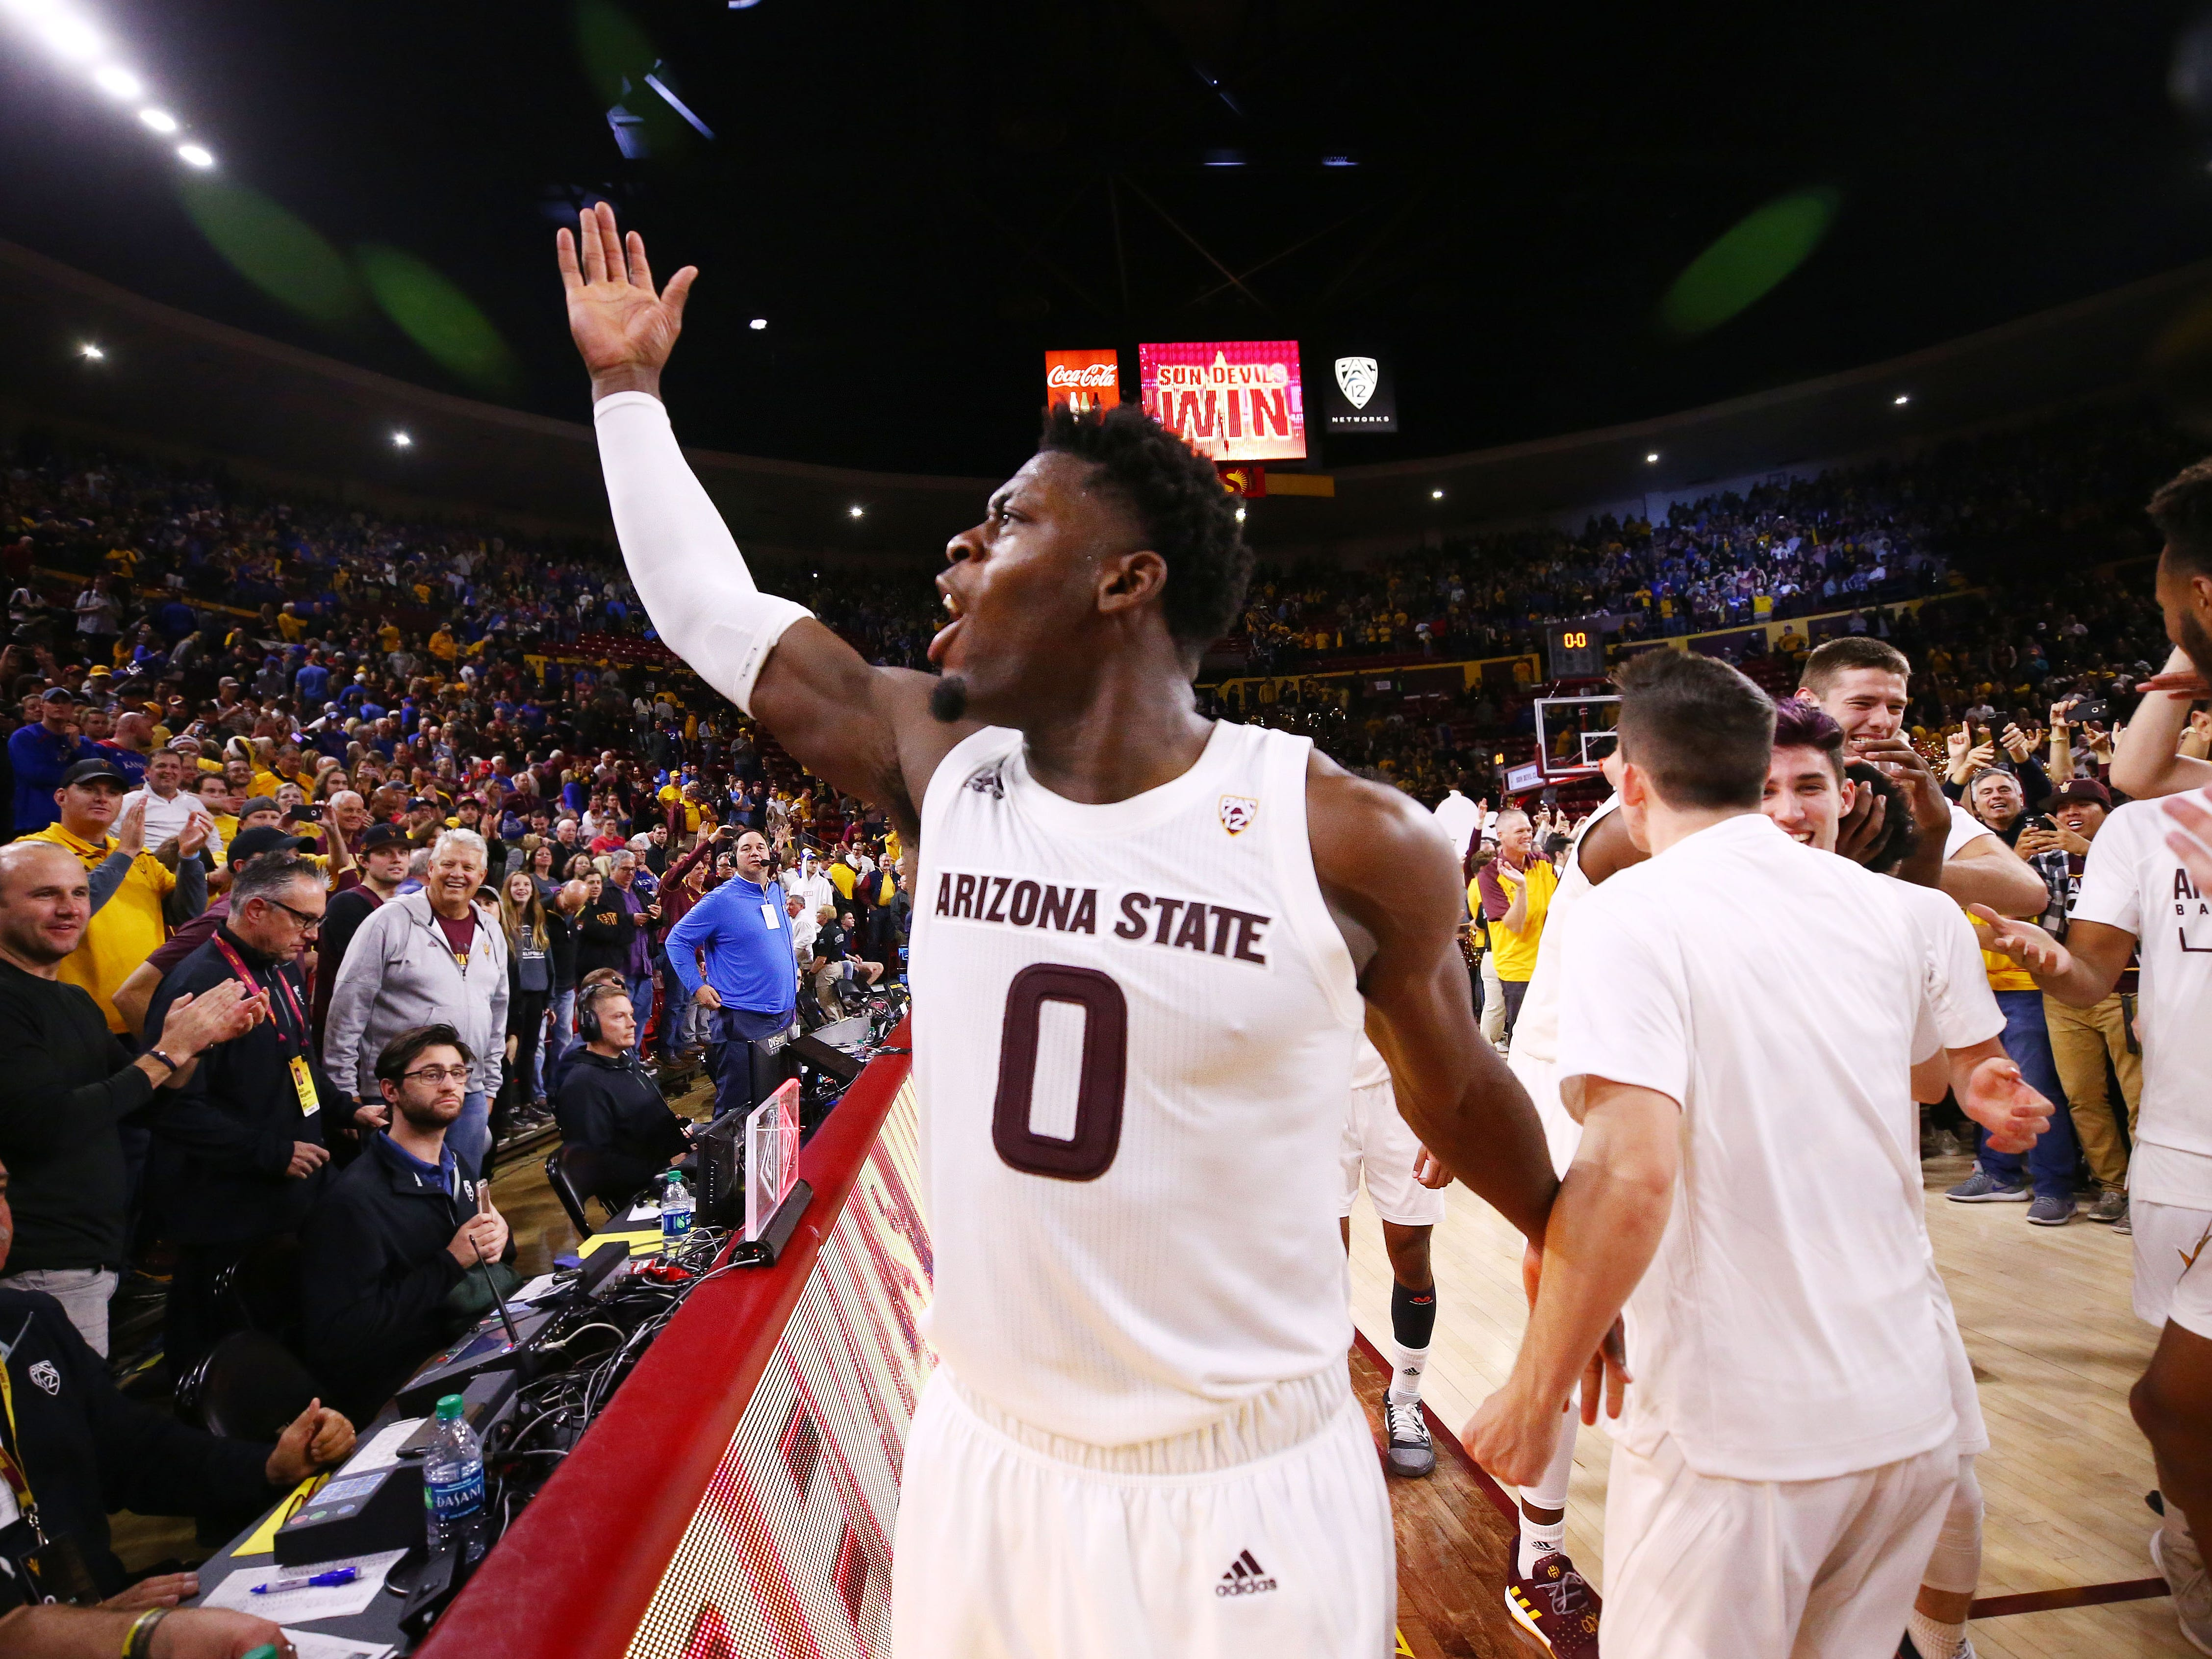 Arizona State's Luguentz Dort celebrates their win over Kansas on Dec. 22 at Wells Fargo Arena.